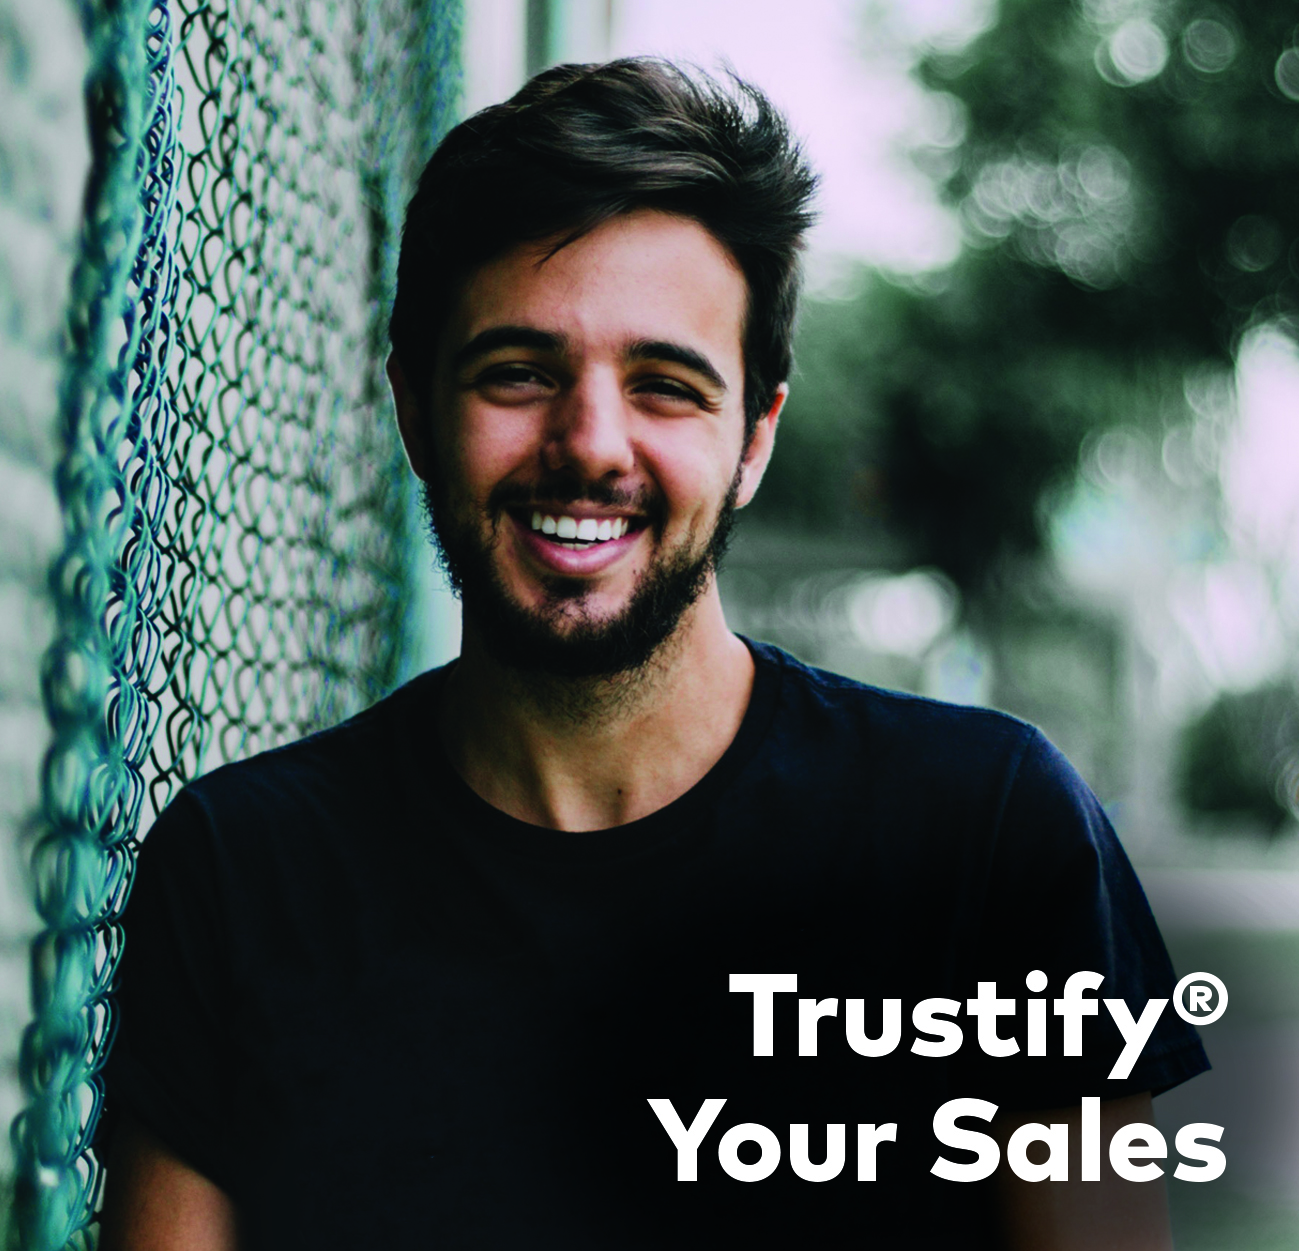 Mext_Consulting_Firm_Melbourne_Trust_Trustify_Your_Sales_Label.jpg